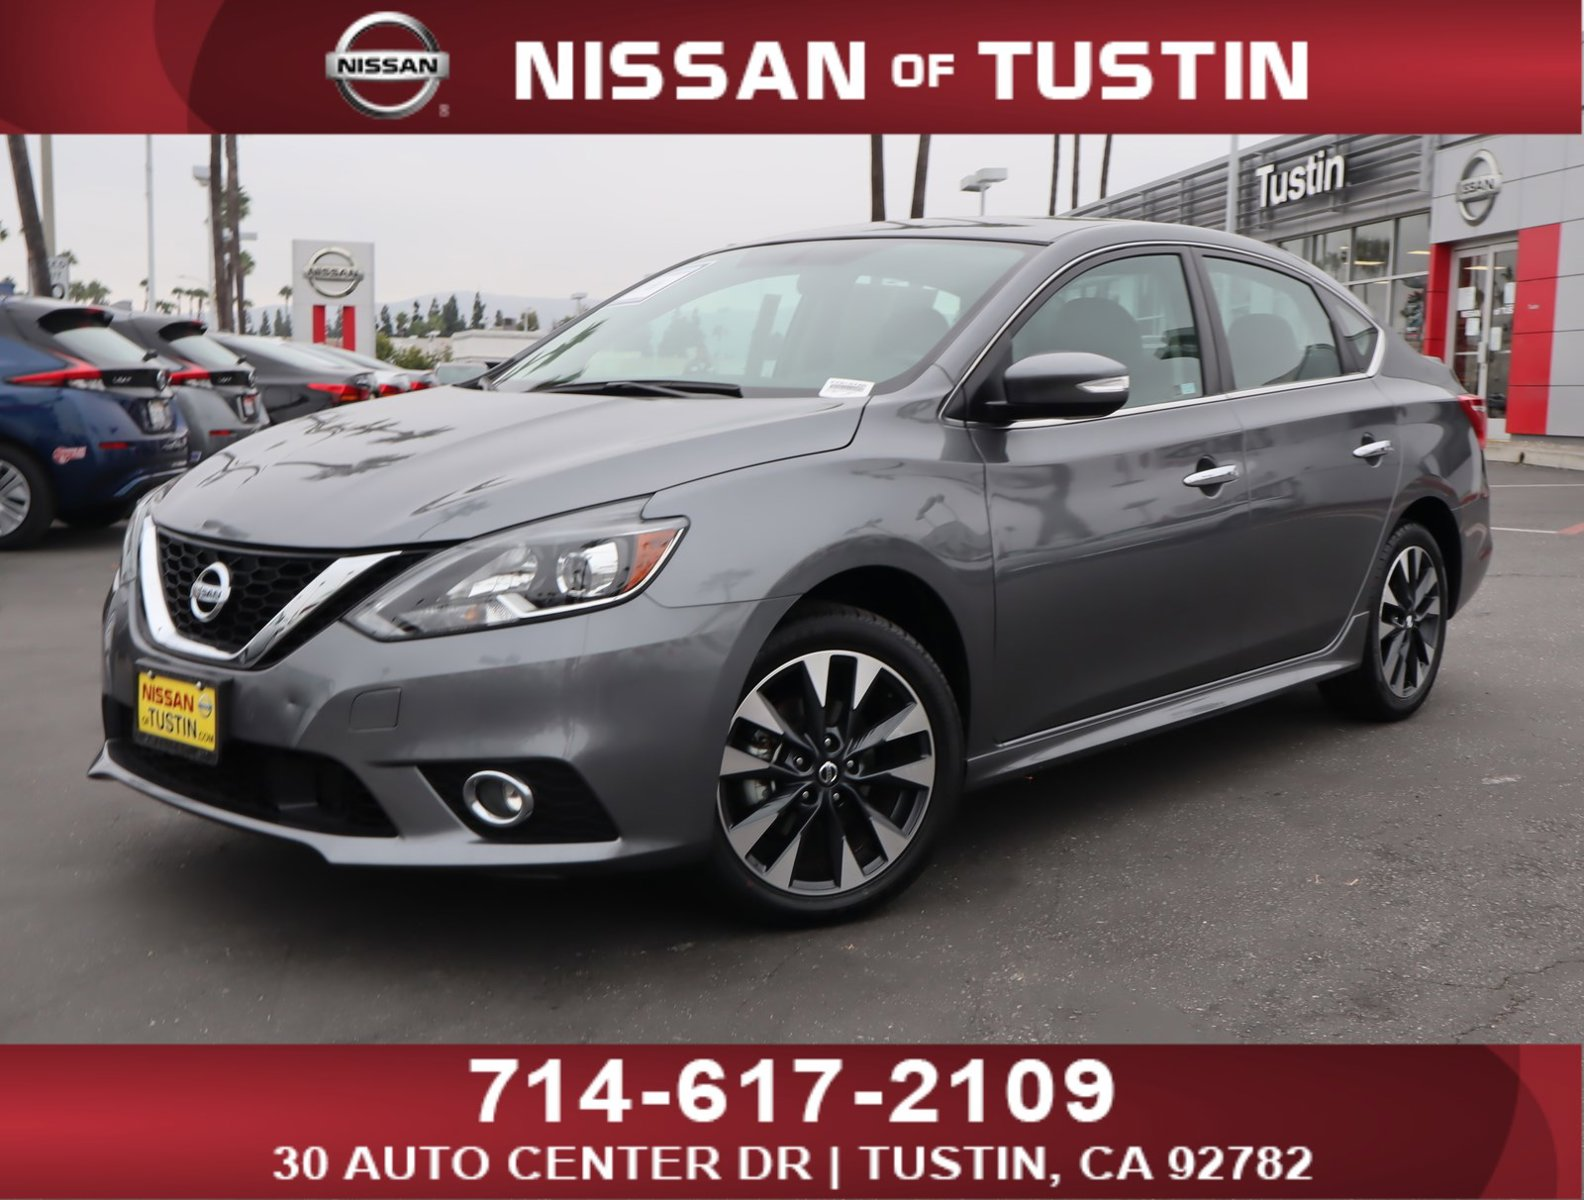 2019 Nissan Sentra SR SR CVT Regular Unleaded I-4 1.8 L/110 [5]